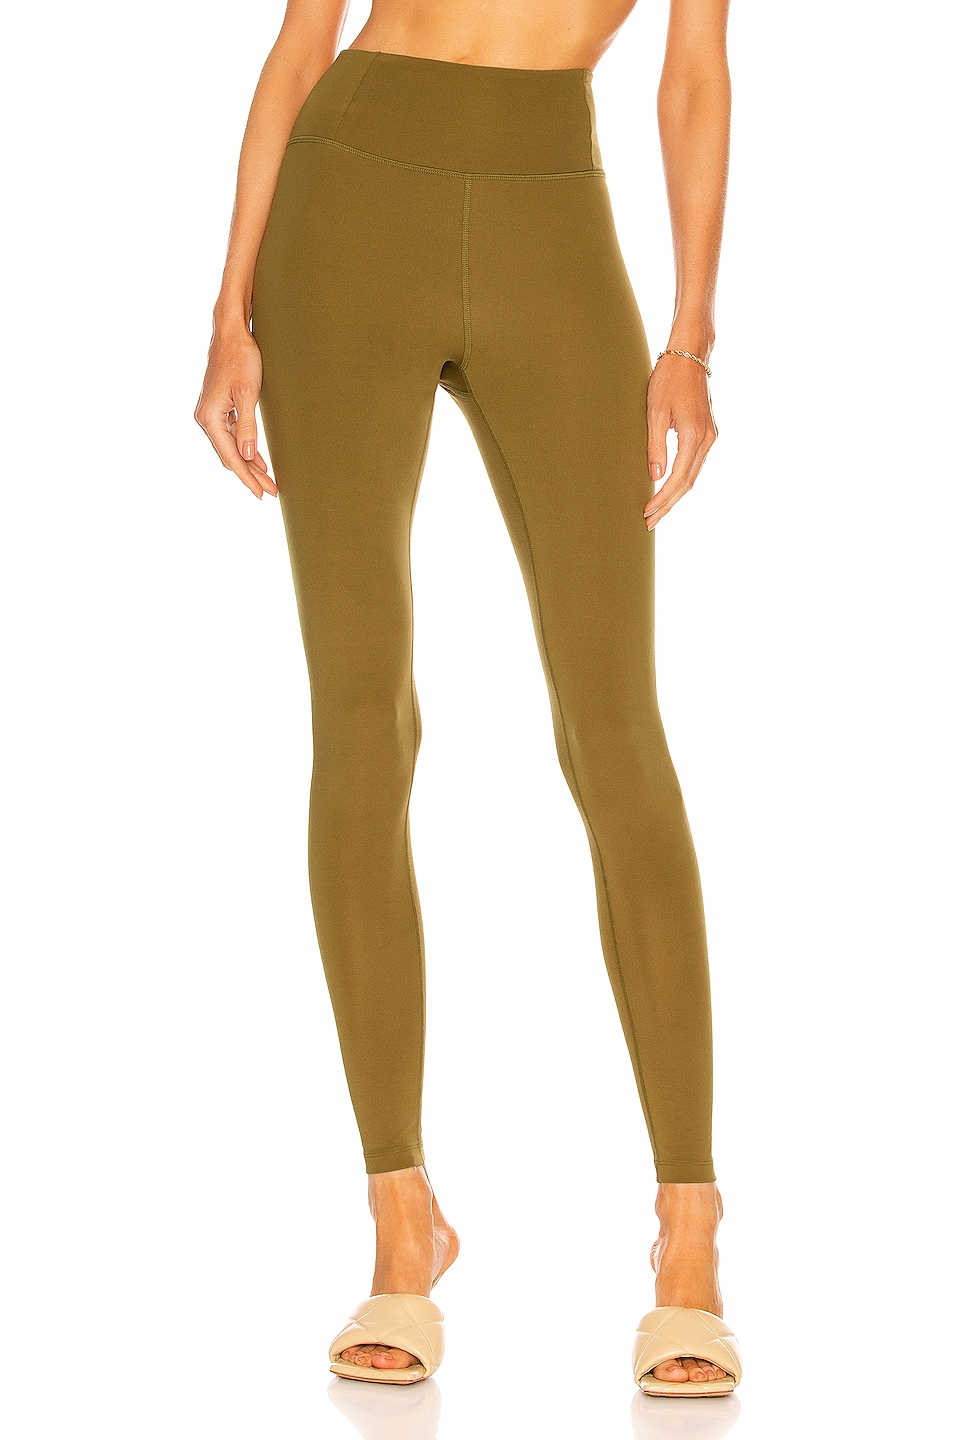 Image 1 of Girlfriend Collective Float Seamless High Rise Legging in Fern